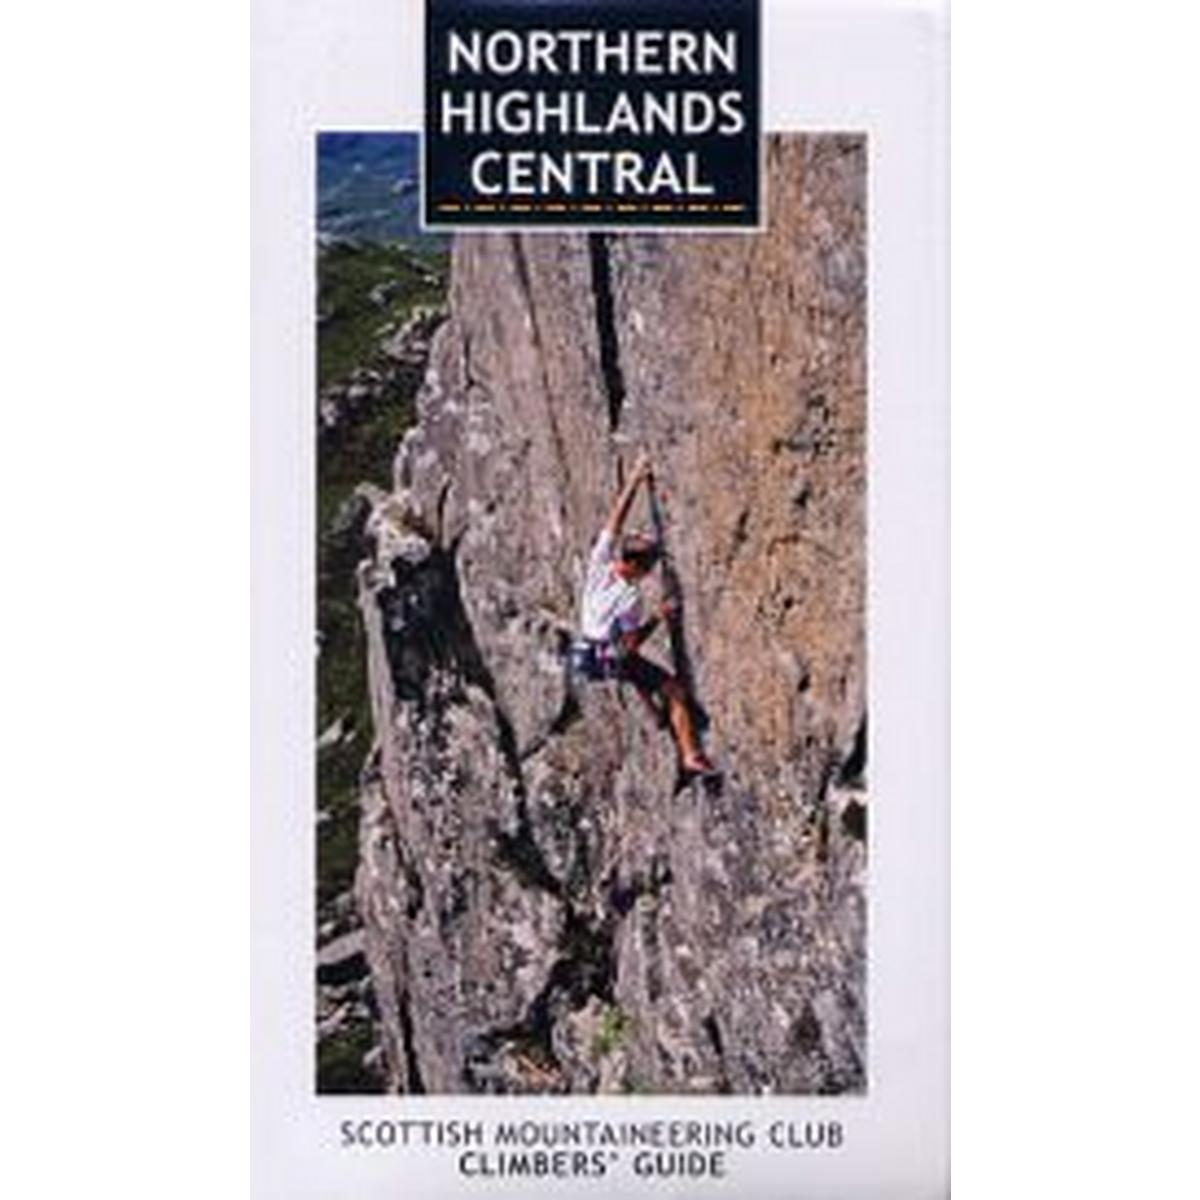 Cordee SMC Climbing Guide Book: Northern Highlands Central